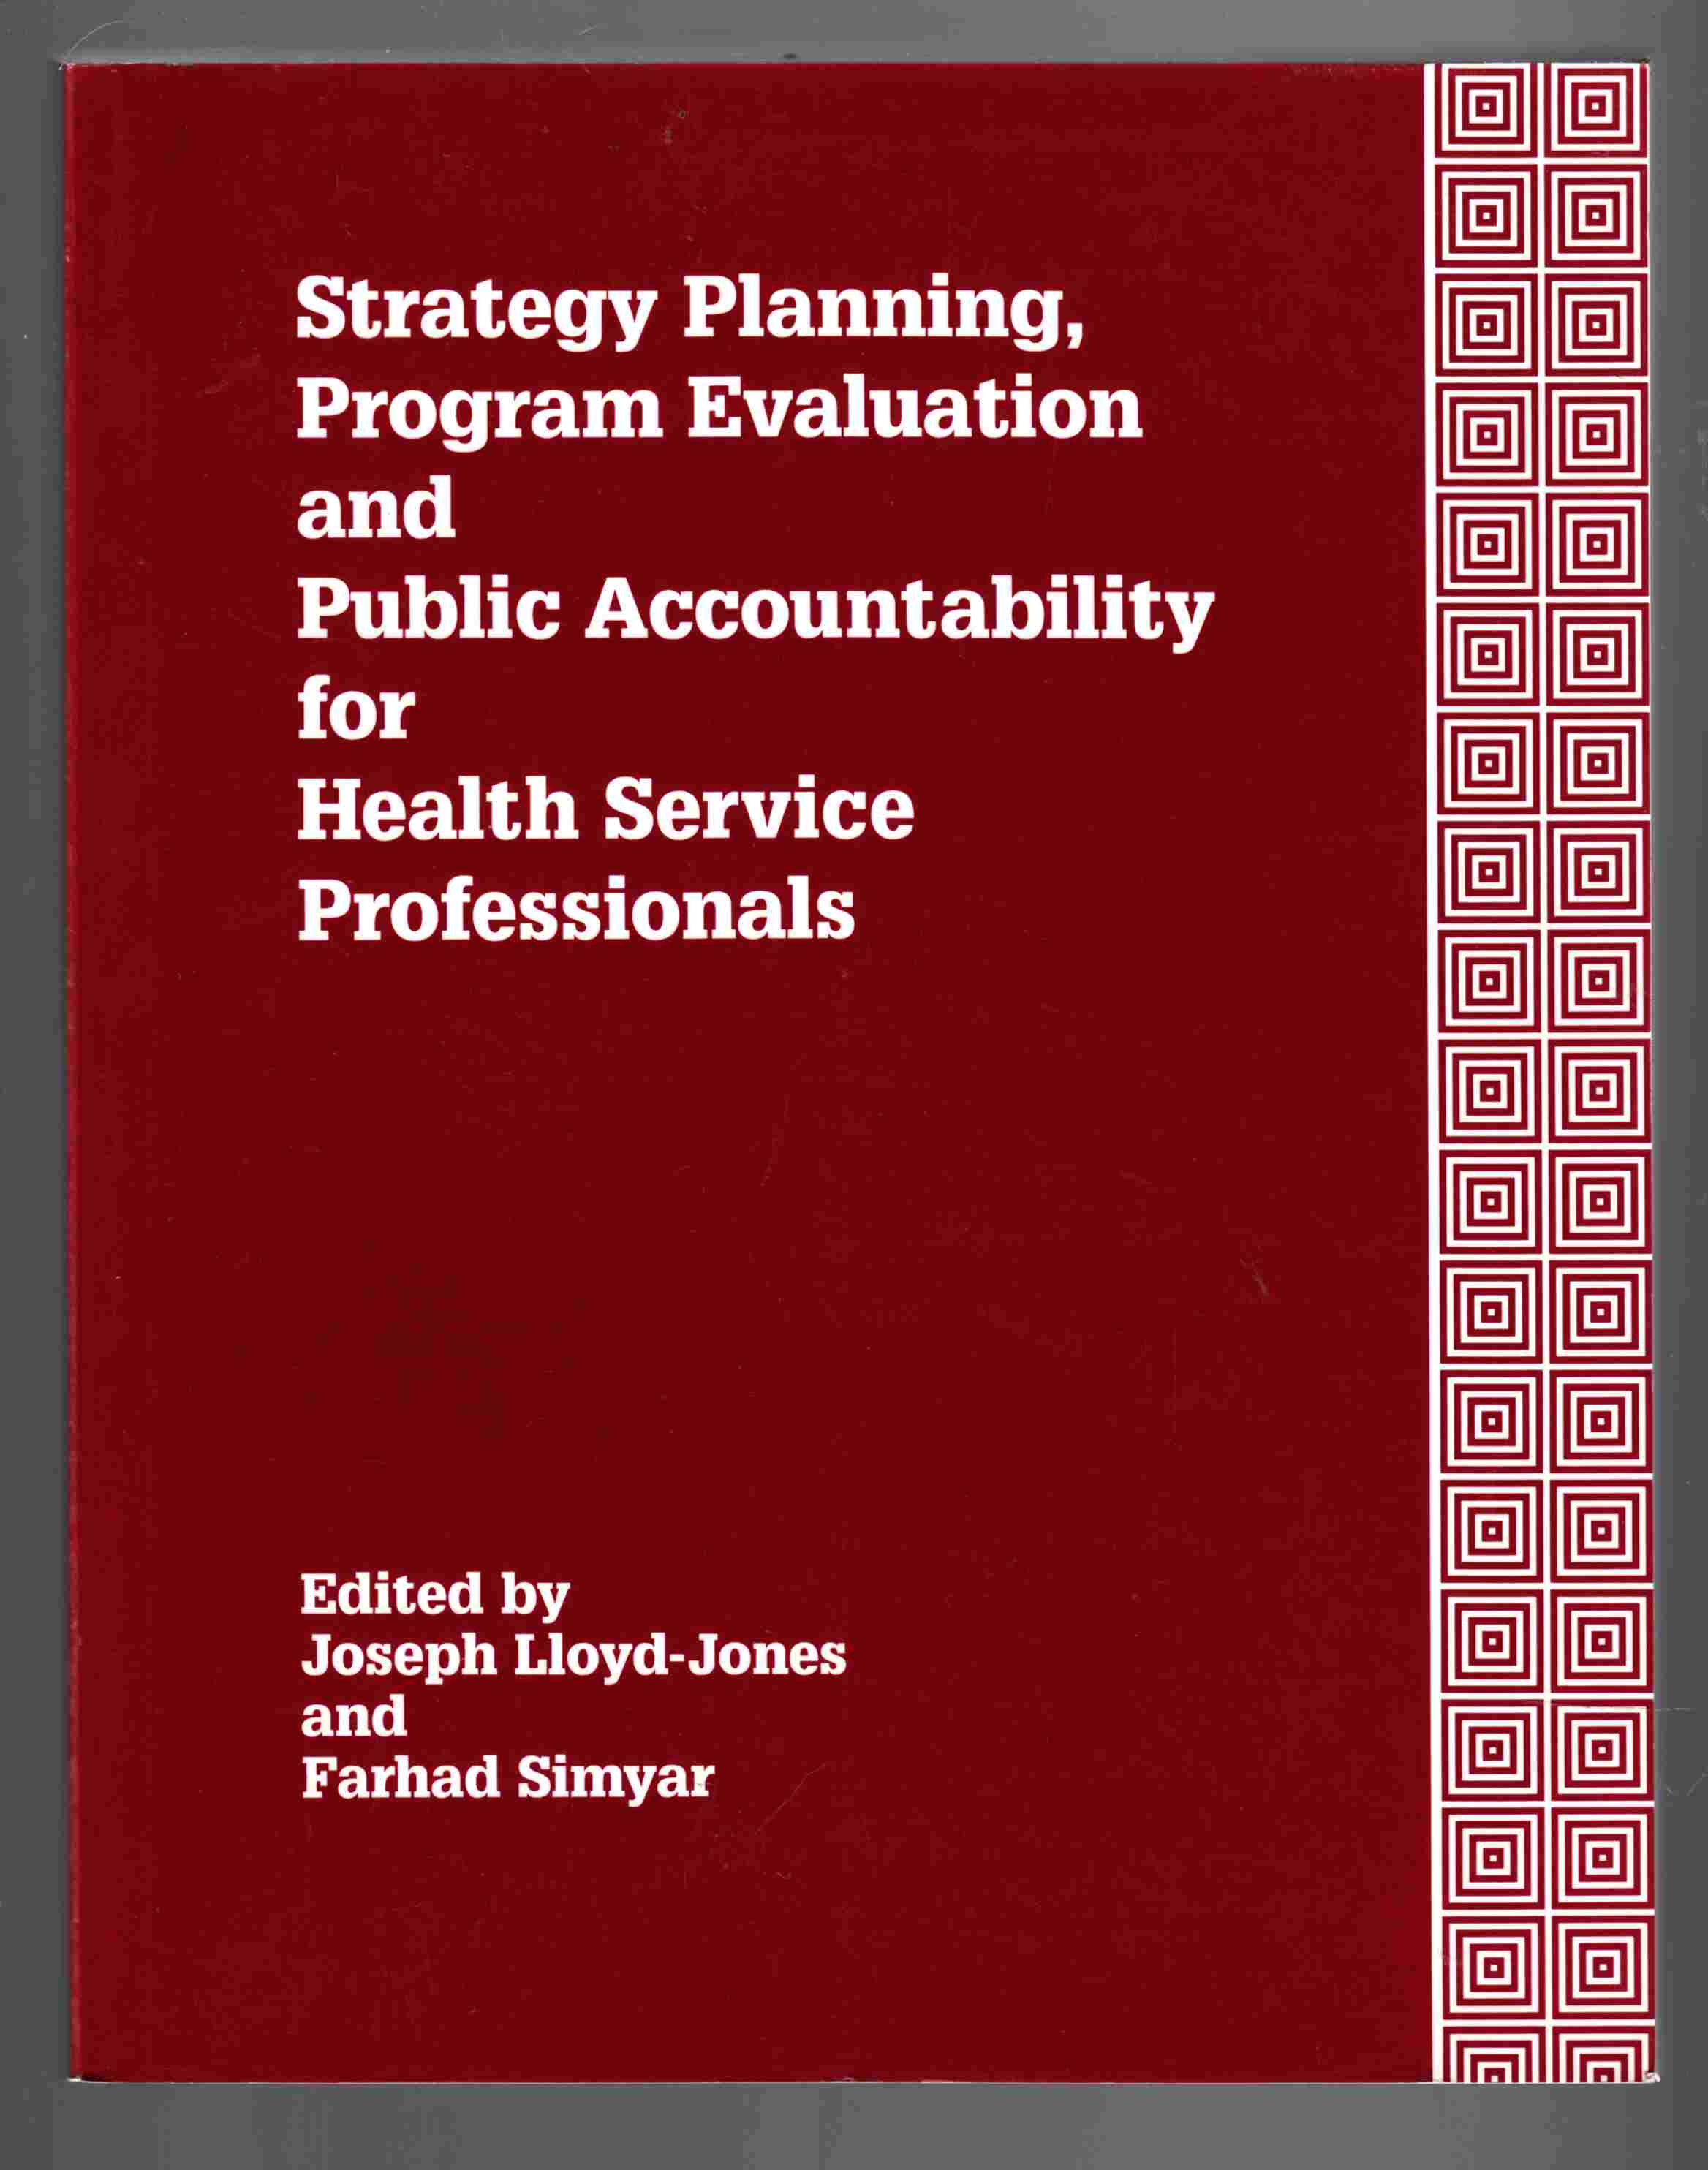 Image for Strategy Planning, Program Evaluation and Public Accountability for Health Service Professionals